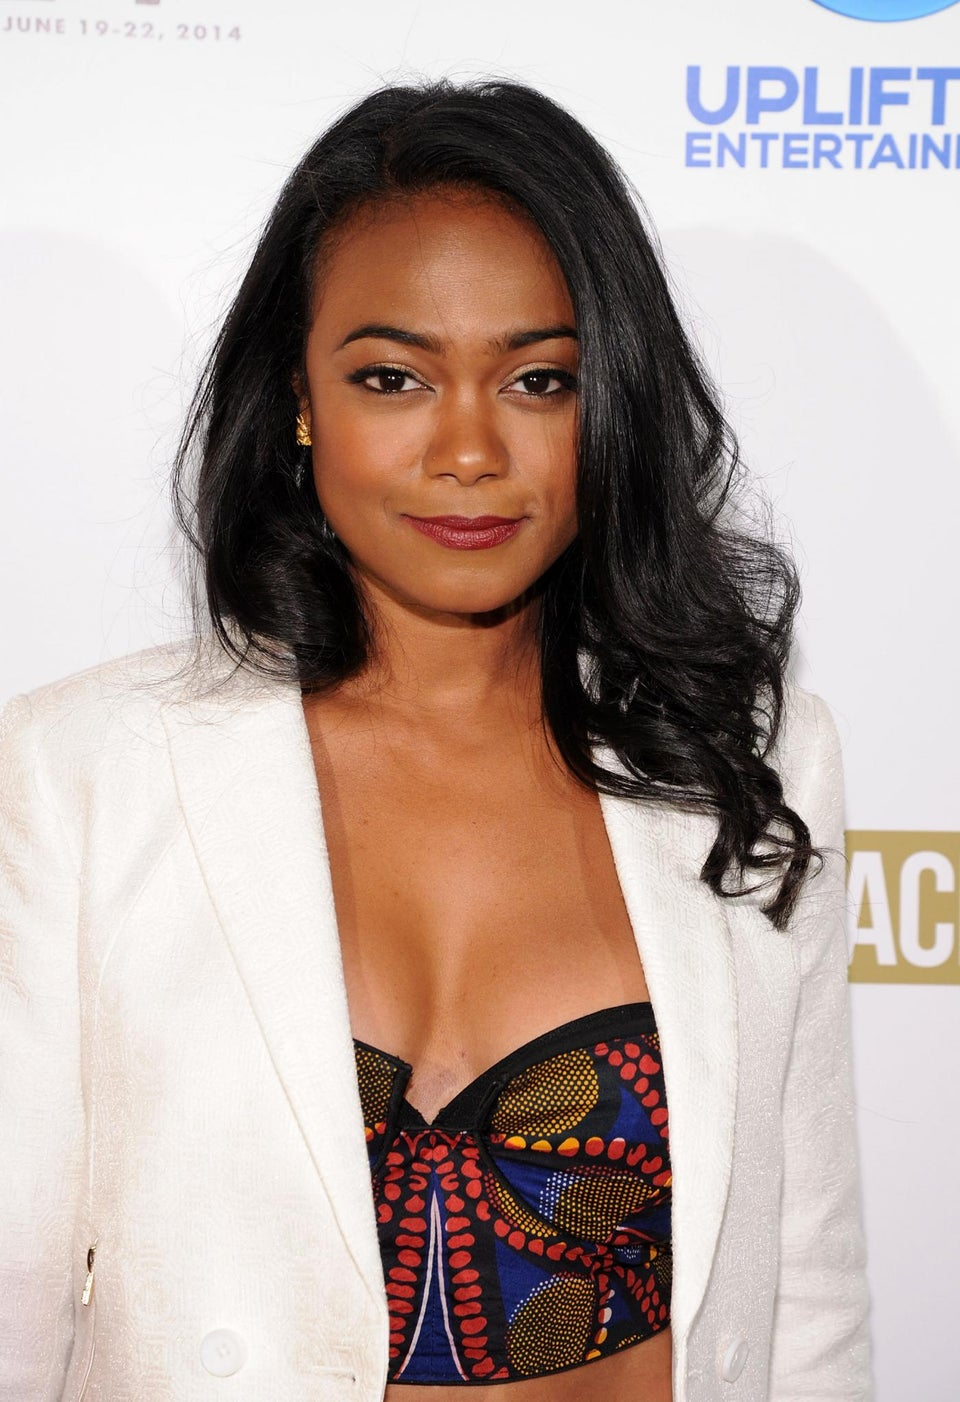 Tatyana Ali Sues Warner Bros; Claims They Stole Idea for 'The Real'